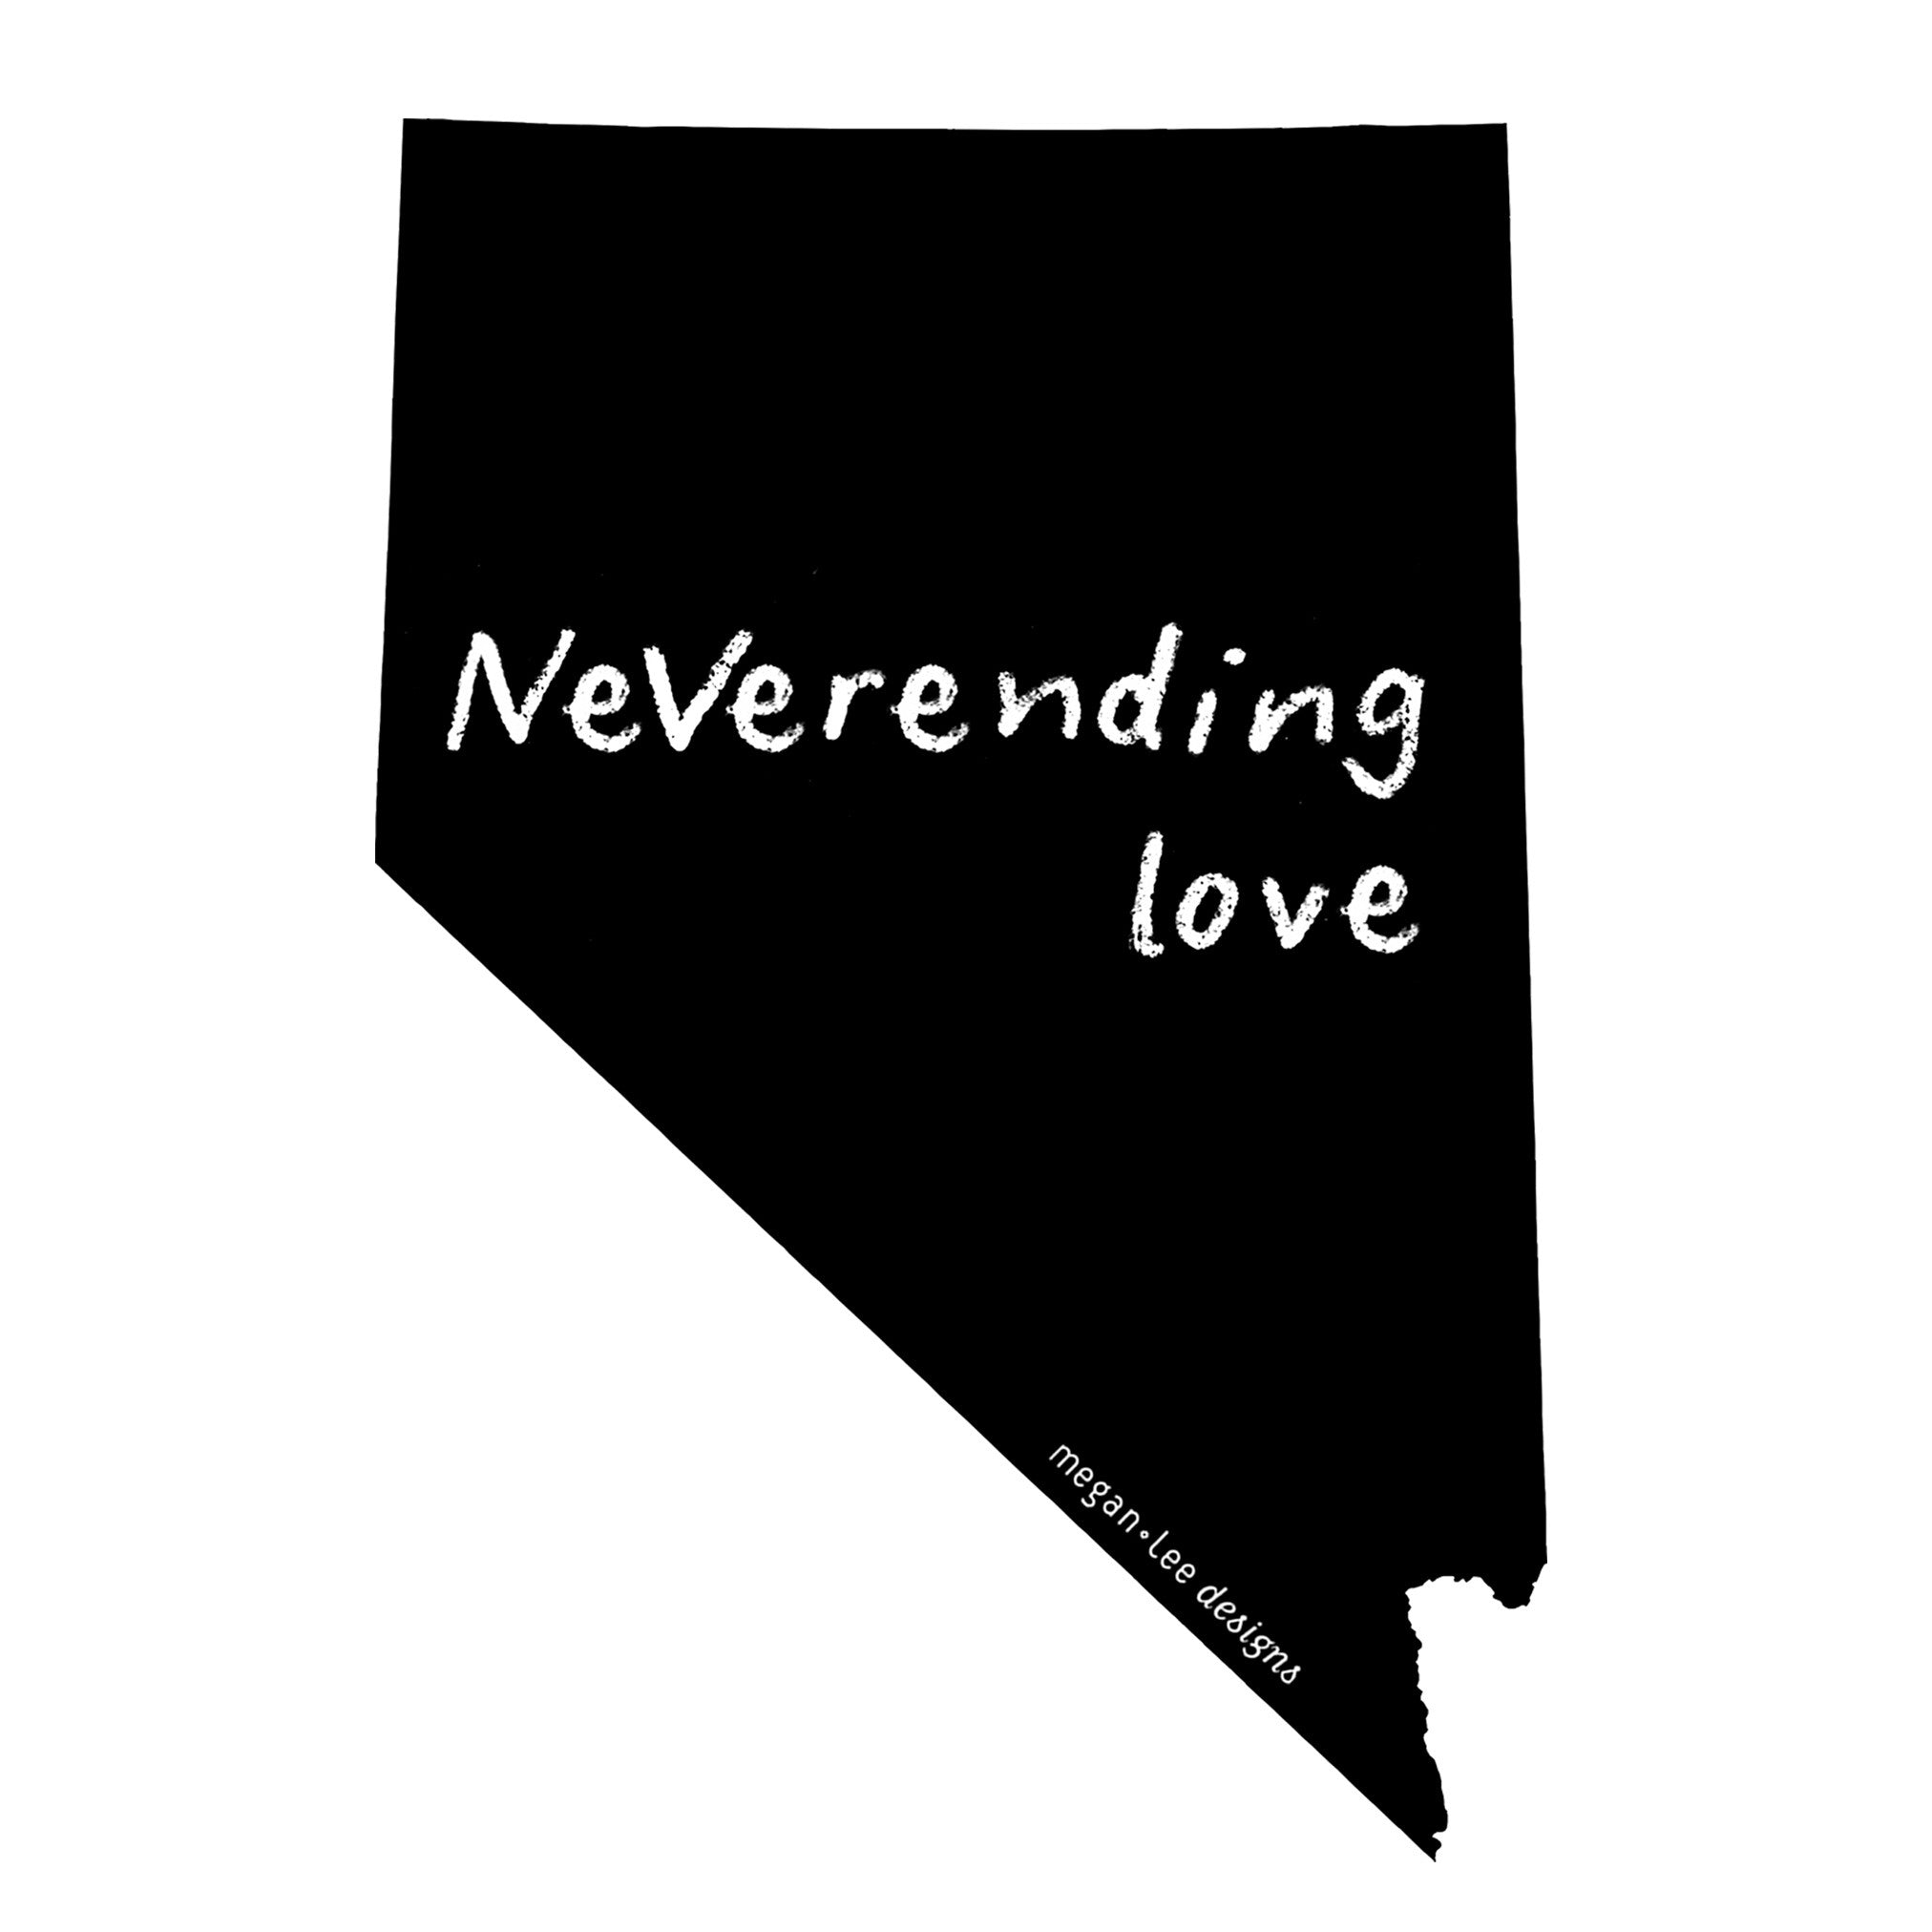 Nevada : NeVerending love bodysuit (white), Baby Apparel - Megan Lee Designs